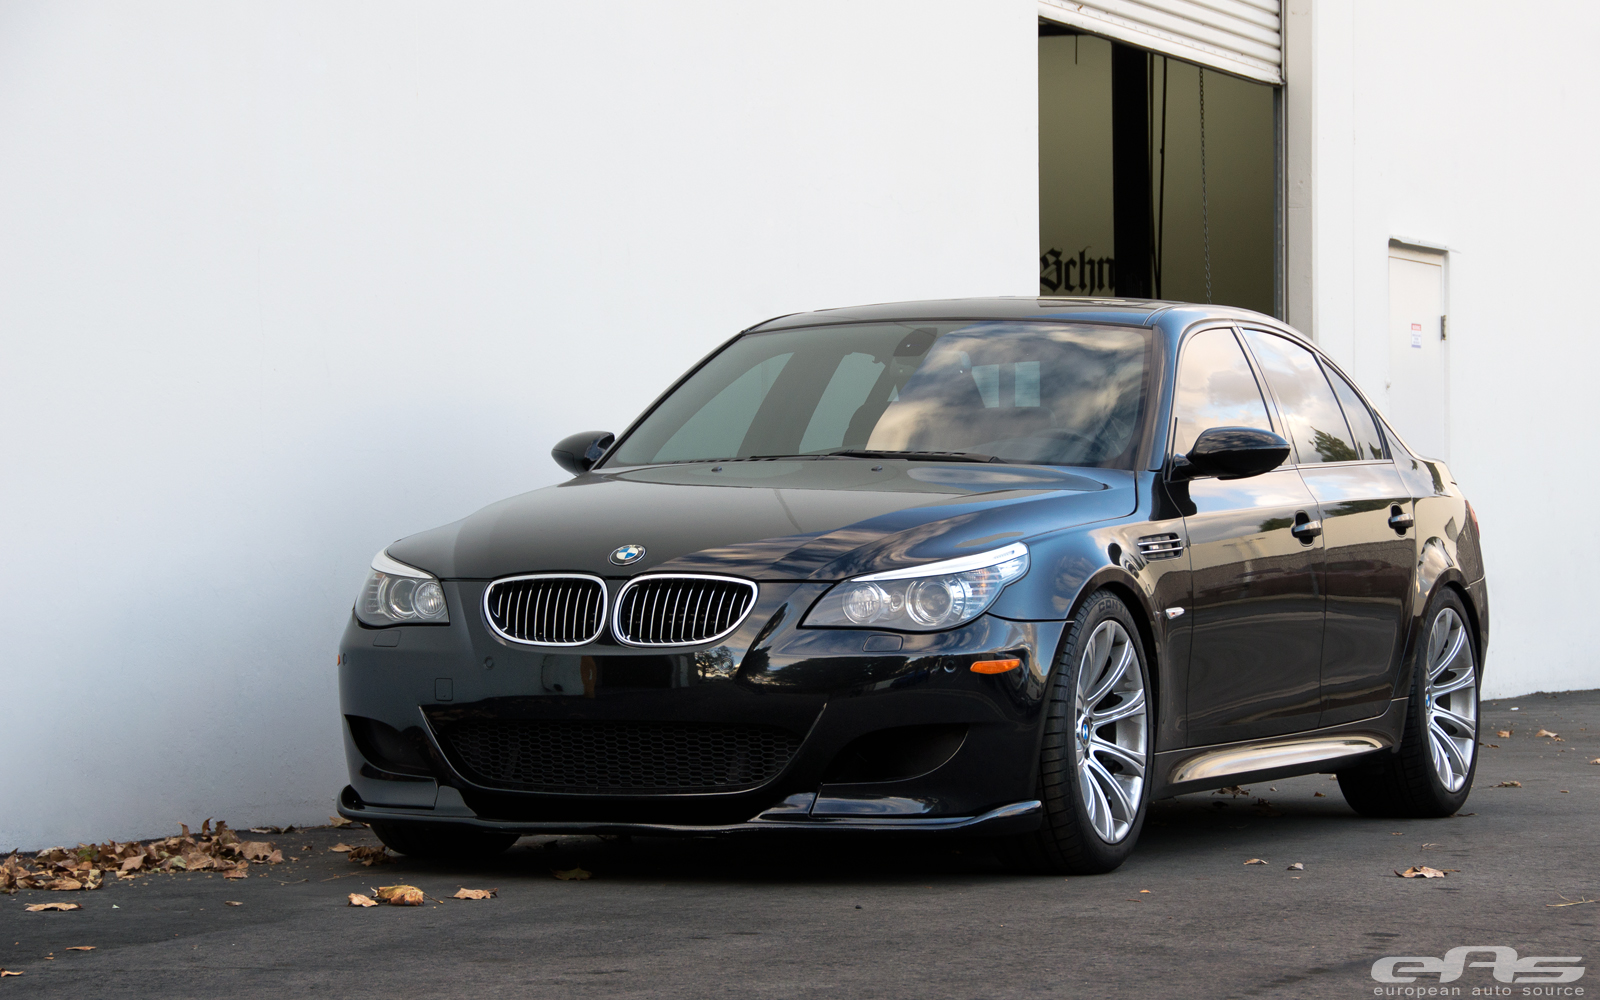 bmw e60 m5 gets new stance at eas autoevolution. Black Bedroom Furniture Sets. Home Design Ideas